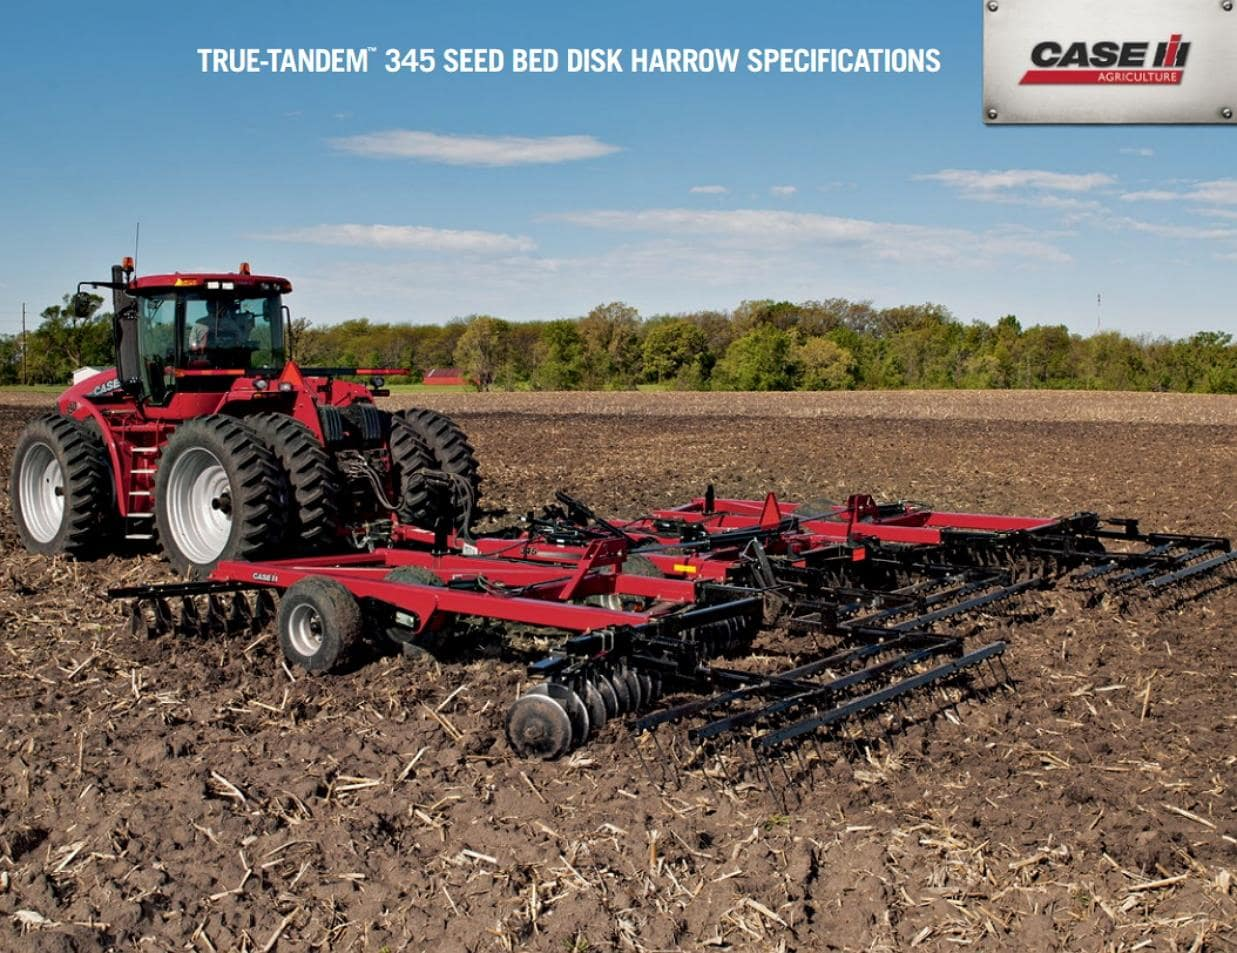 True-Tandem 345 Seed Bed Disk Harrow